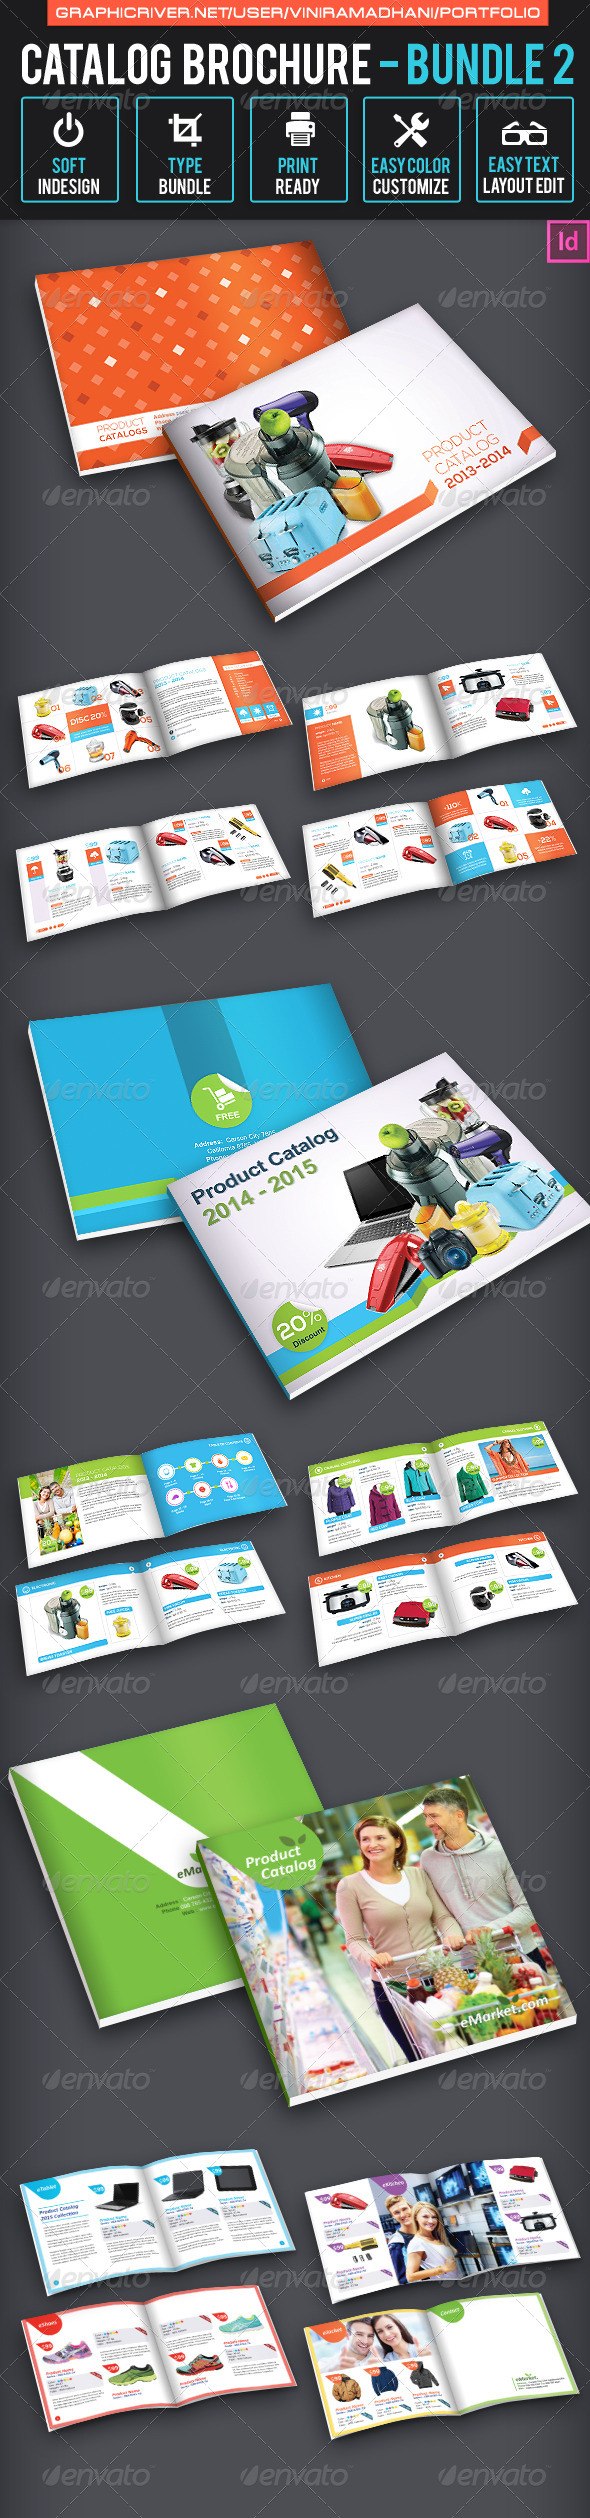 Catalog Brochure Bundle 2 - Catalogs Brochures